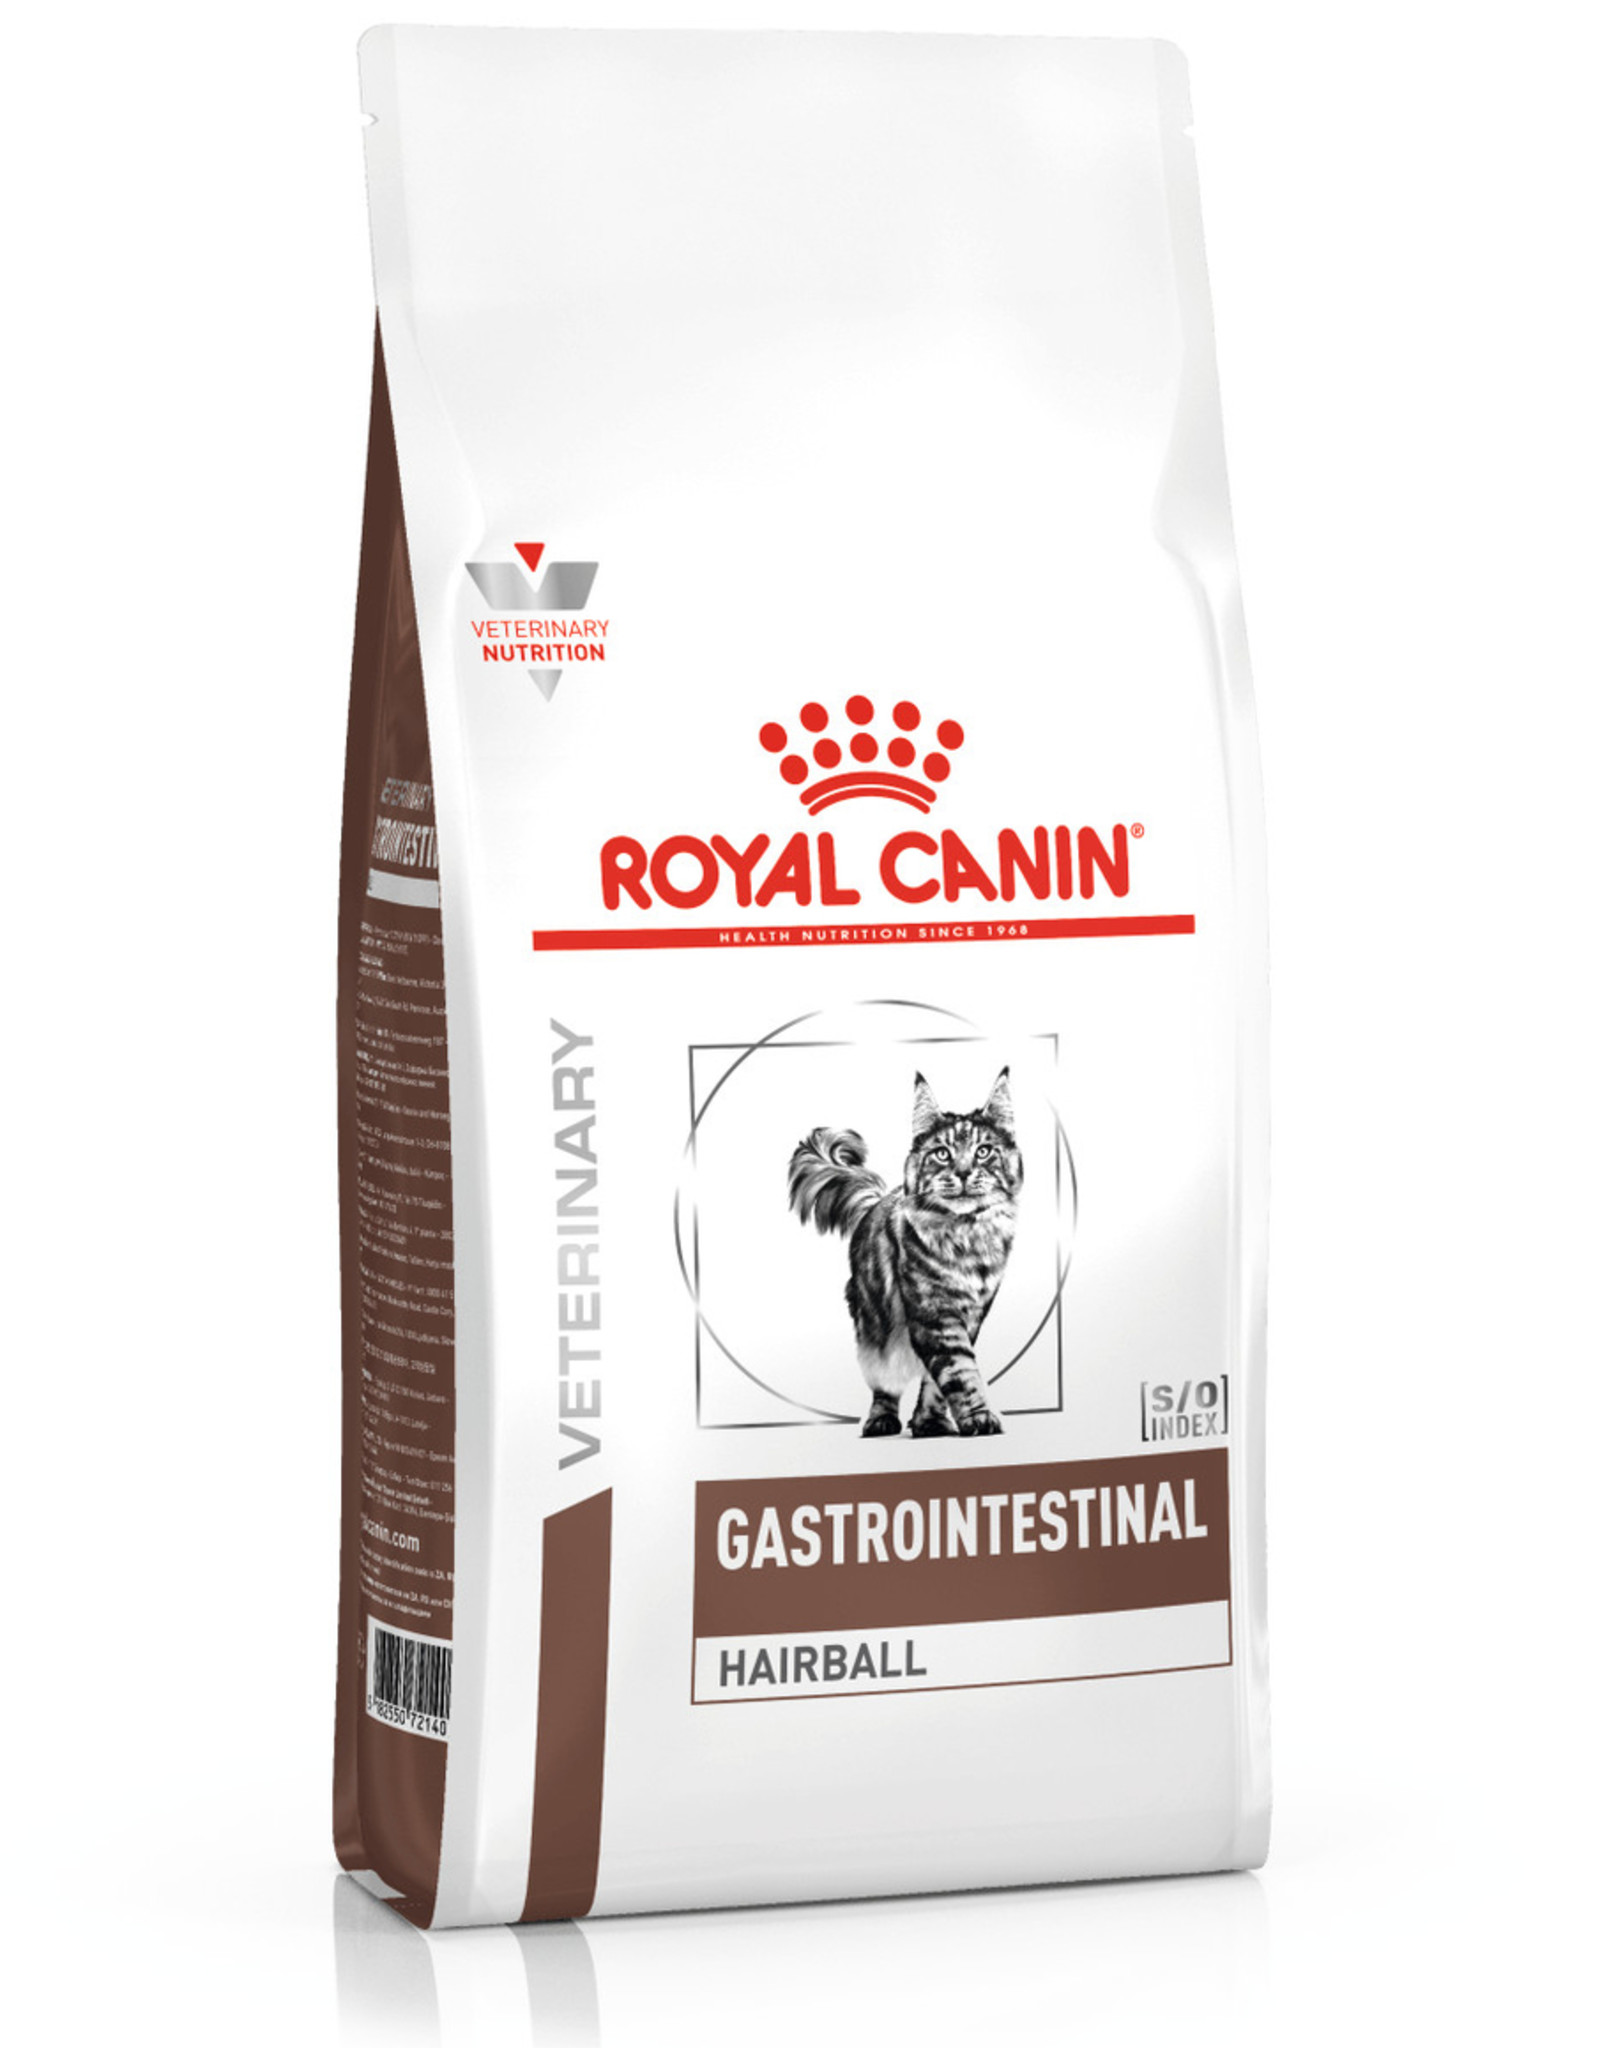 Royal Canin Royal Canin Gastro Intestinal Hairball Kat 2kg